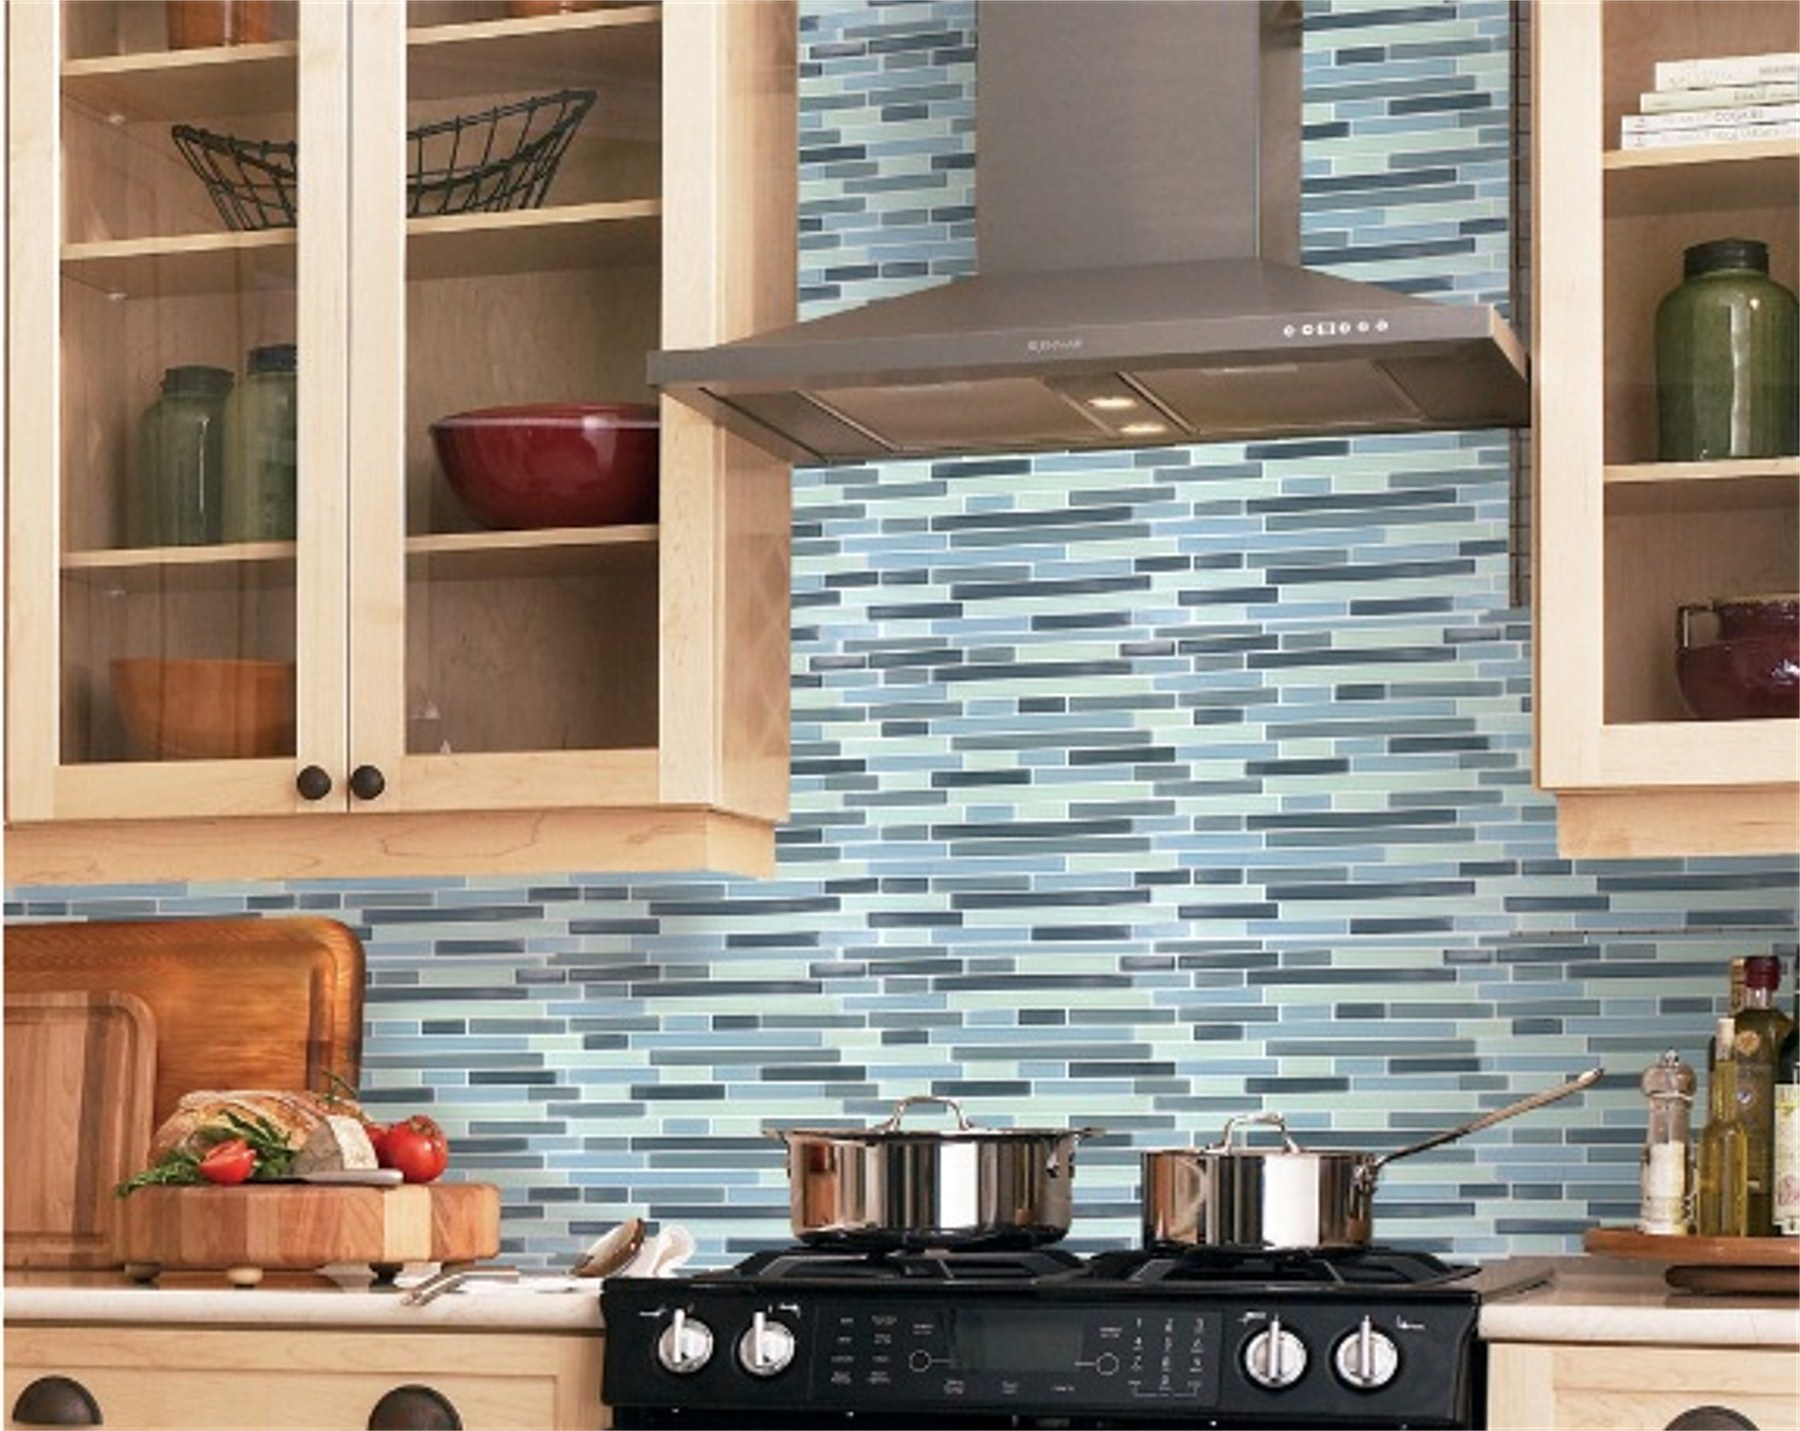 - The World Of Natural Stone, Rectangular Tiles Go To Great Lengths